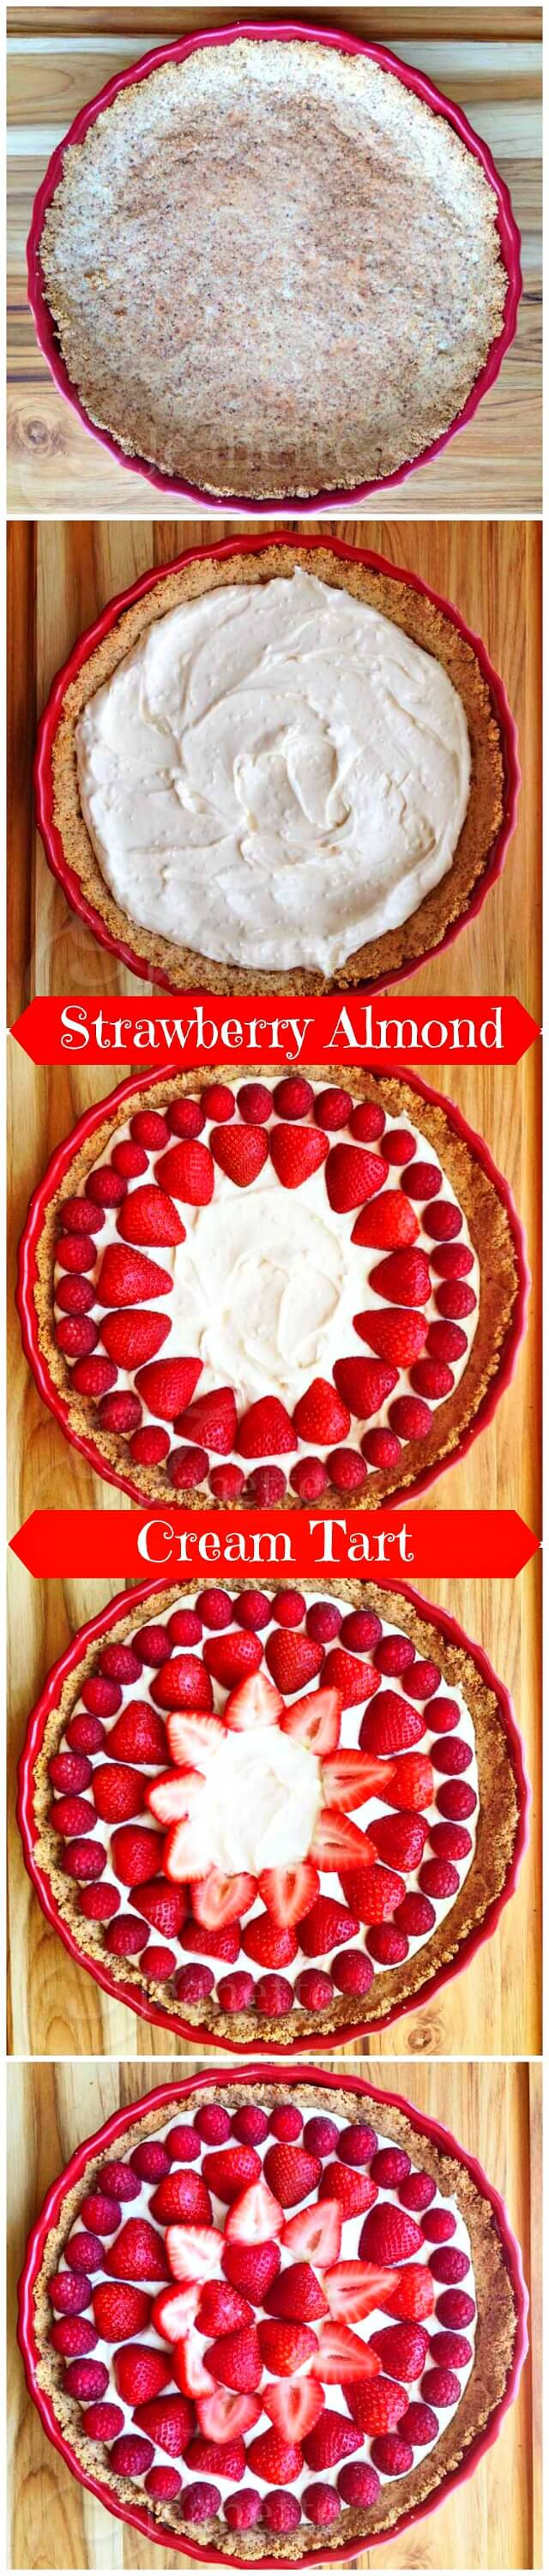 How To Make Strawberry Almond Cream Tart © Jeanette's Healthy Living